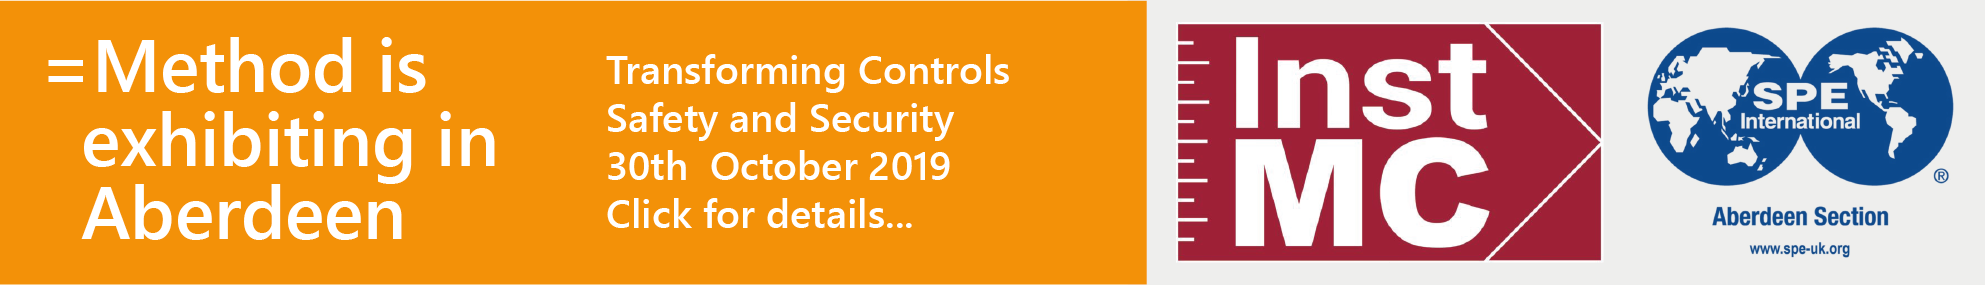 Transforming Controls Safety and Security Aberdeen October 30